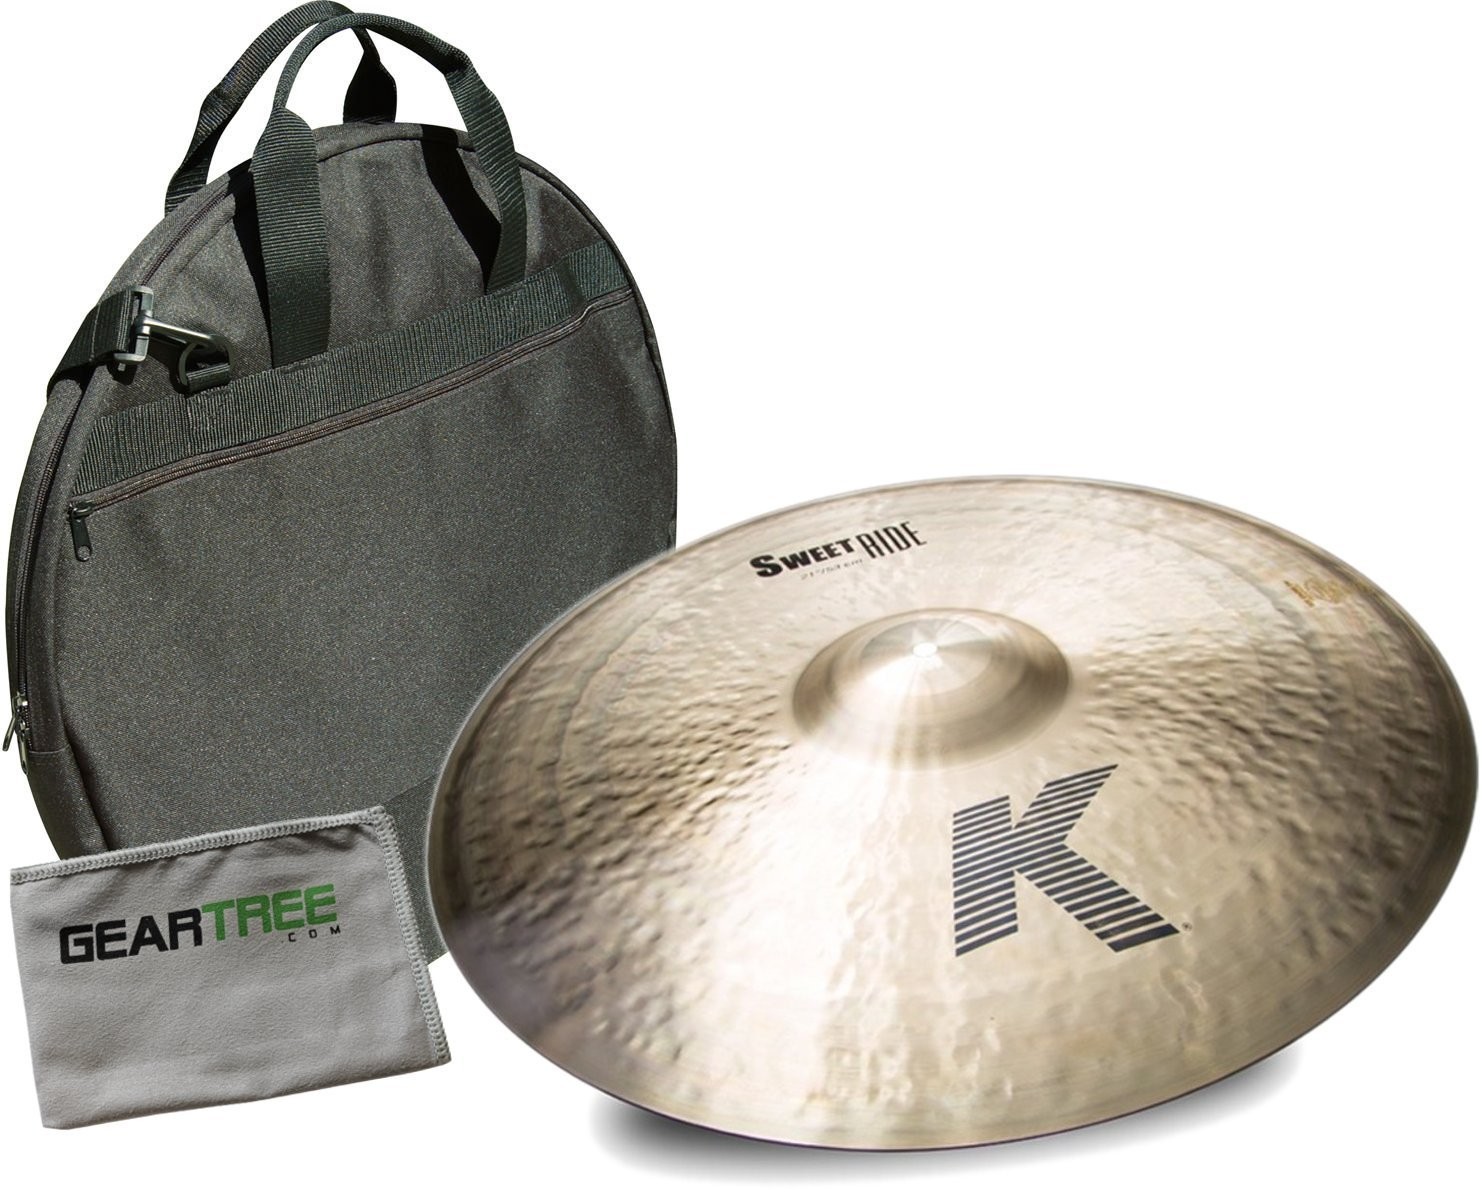 Zildjian K0731 21in K Zildjian Sweet Ride Cymbal Bundle w/Bag and Cloth Z I L D J I A N